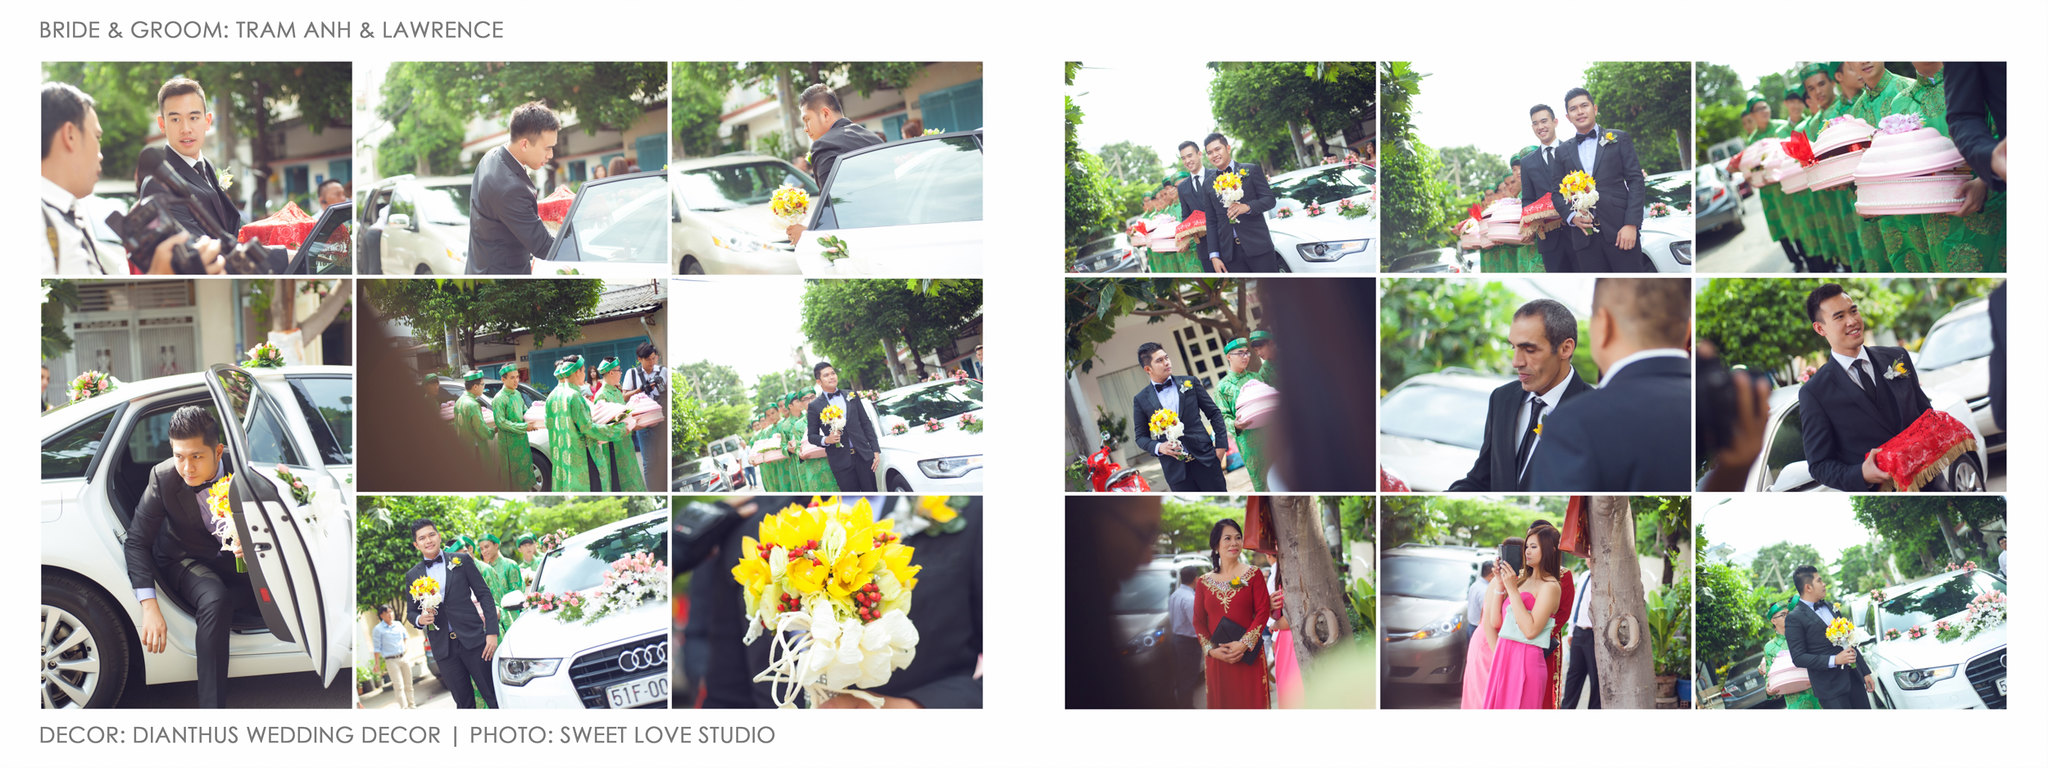 Chup-anh-cuoi-phong-su-Tram-Anh-Lawrence-06